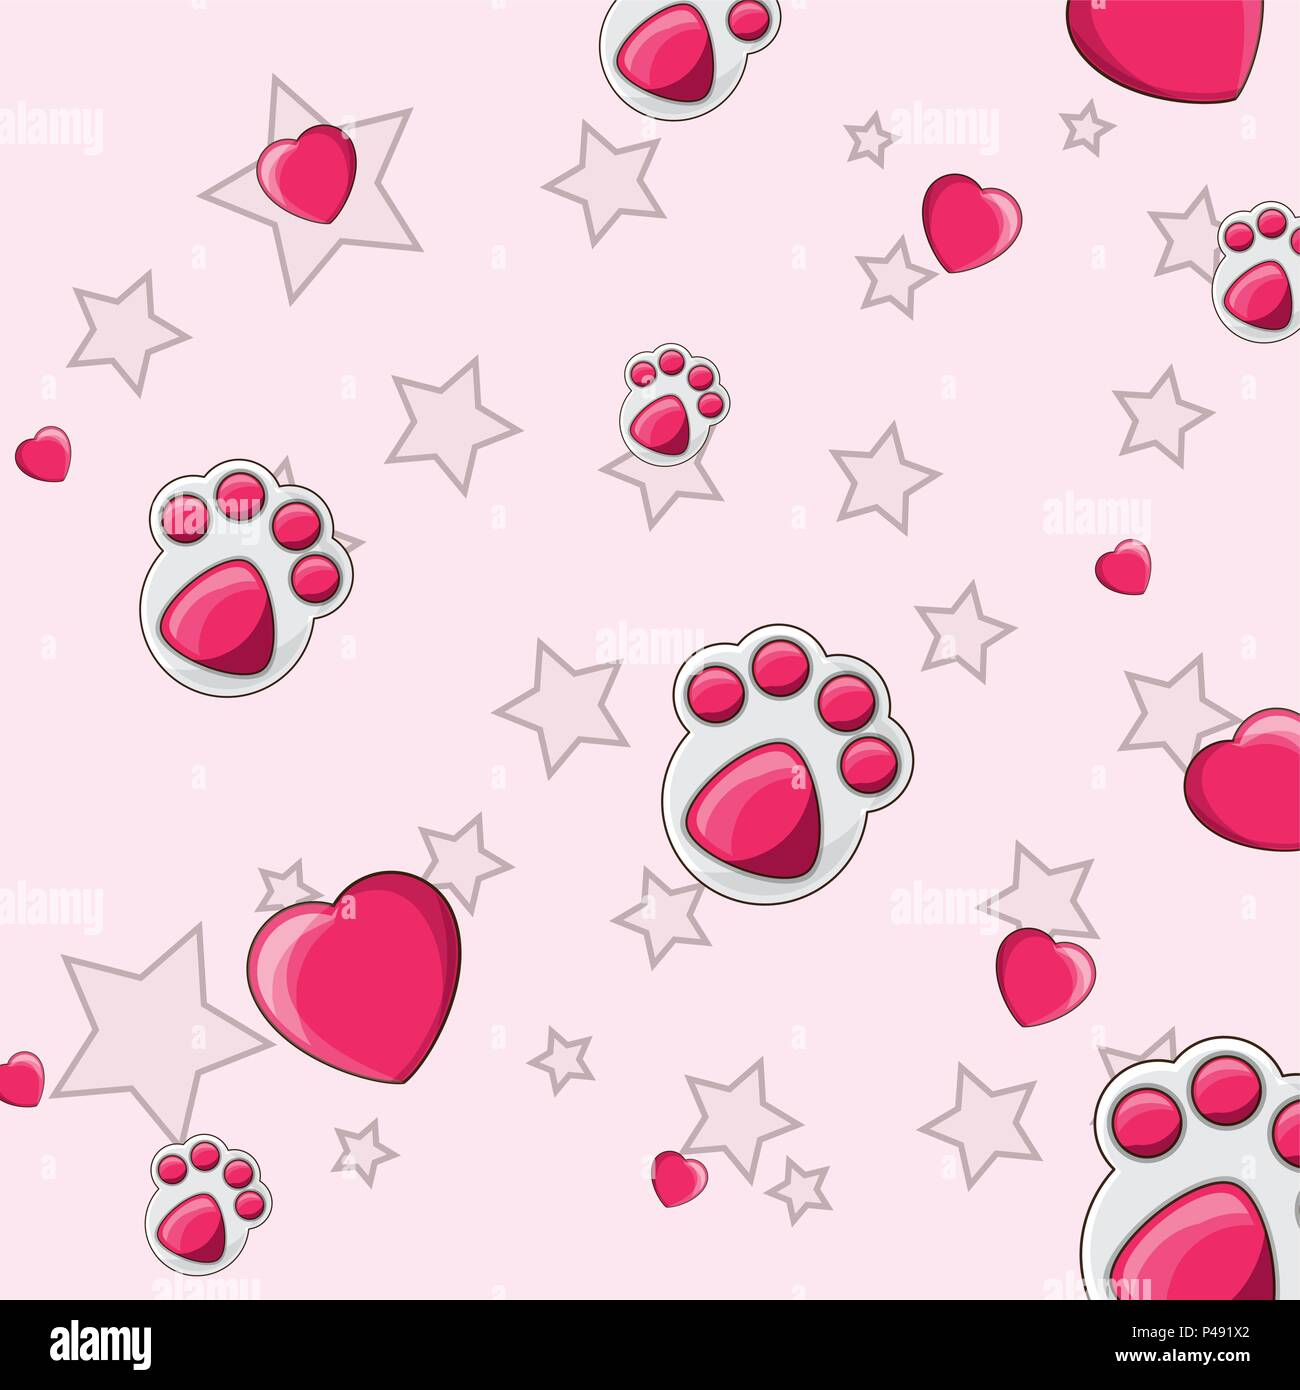 dog footprint and hearts pattern, colorful design.  vector illustration - Stock Vector